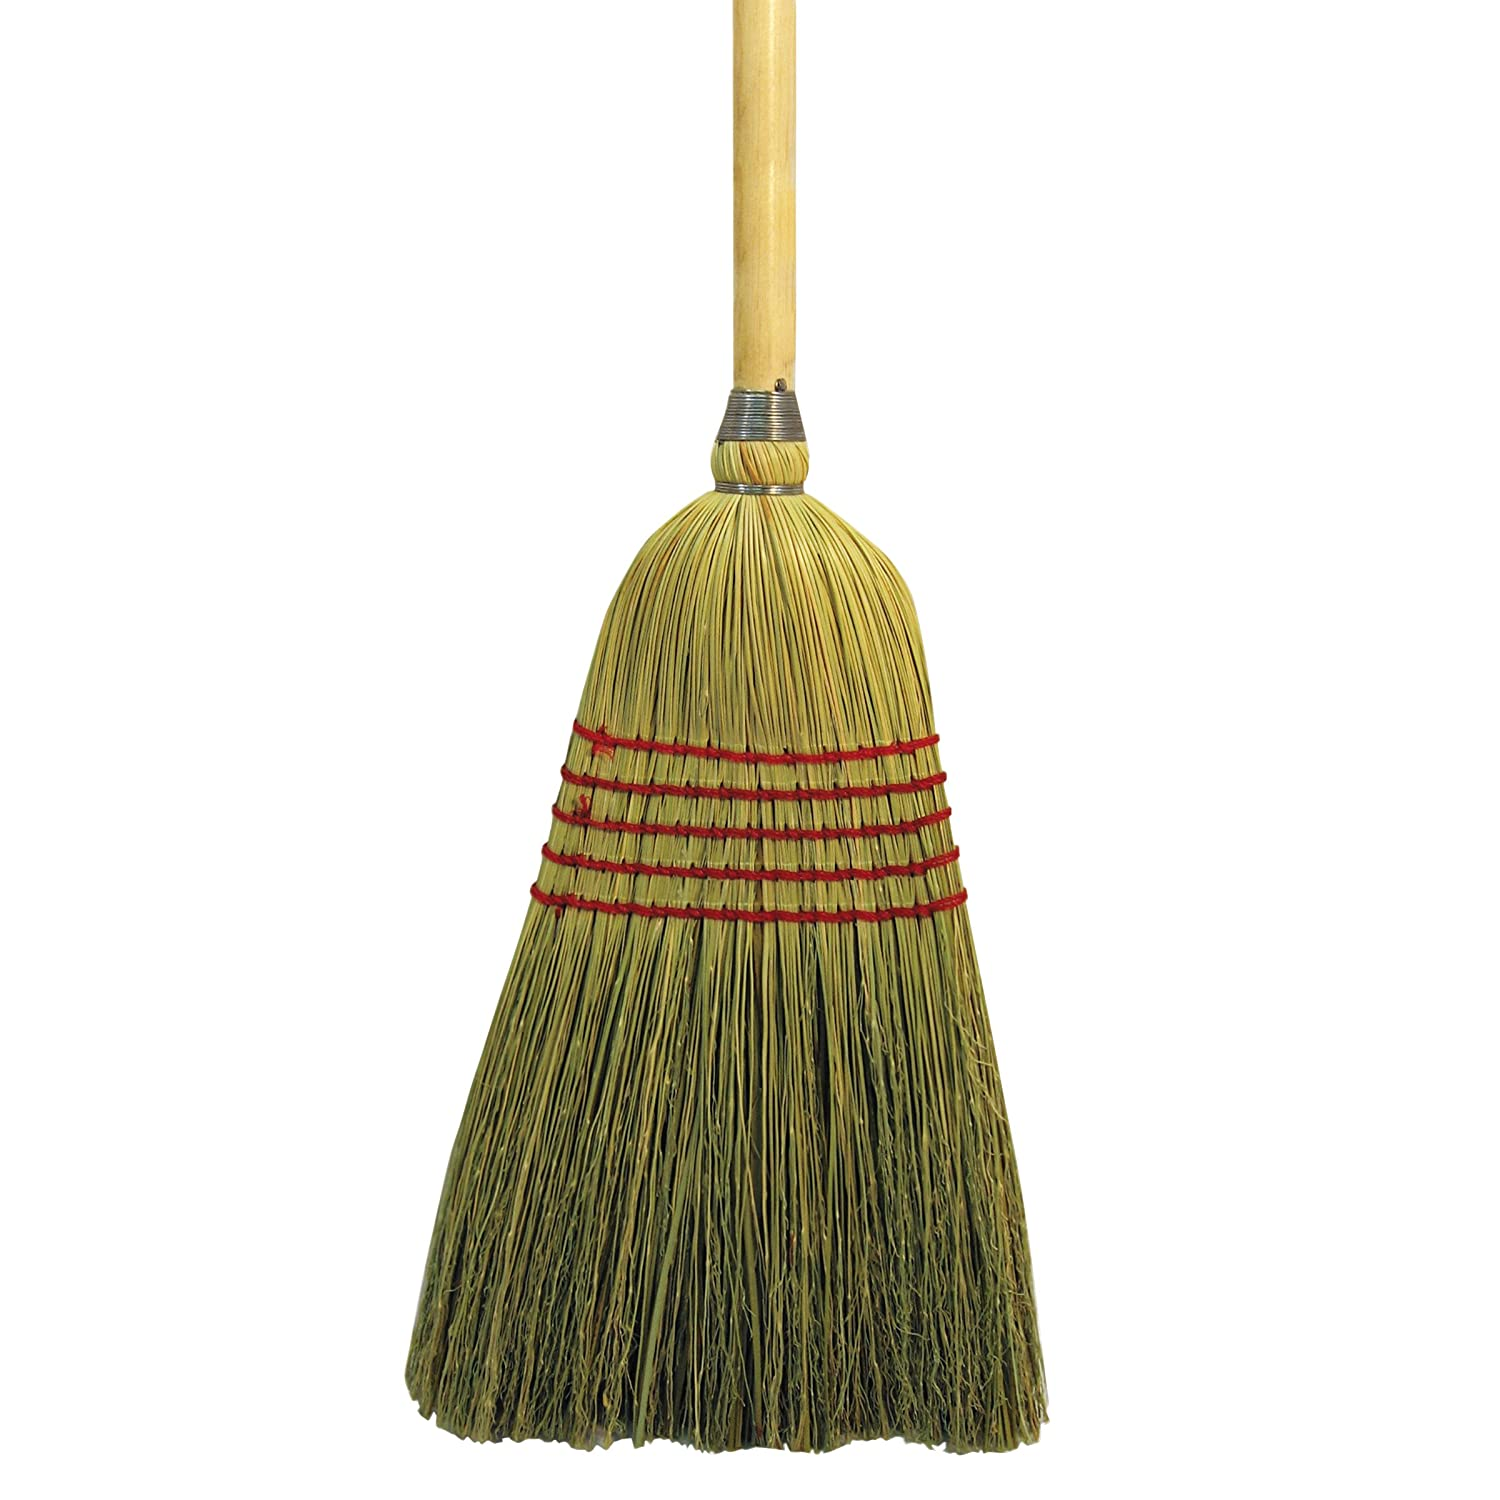 UNISAN Parlor Broom, Yucca/Corn Fiber Bristles, 42 Inch Wood Handle, Natural (926Y)